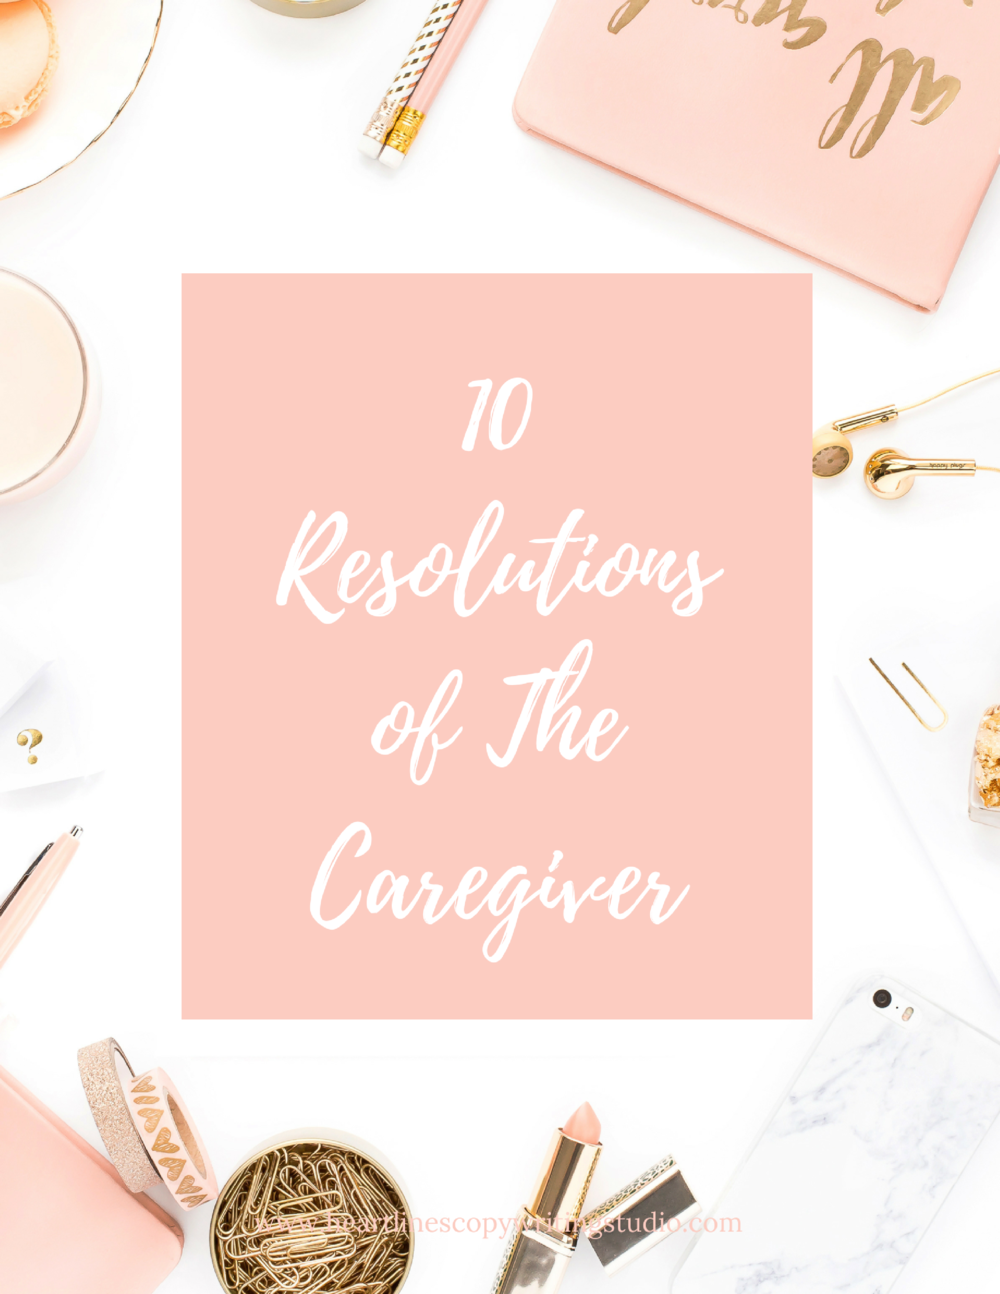 Download the PDF version of The 10 Resolutions of The Caregiver right here.